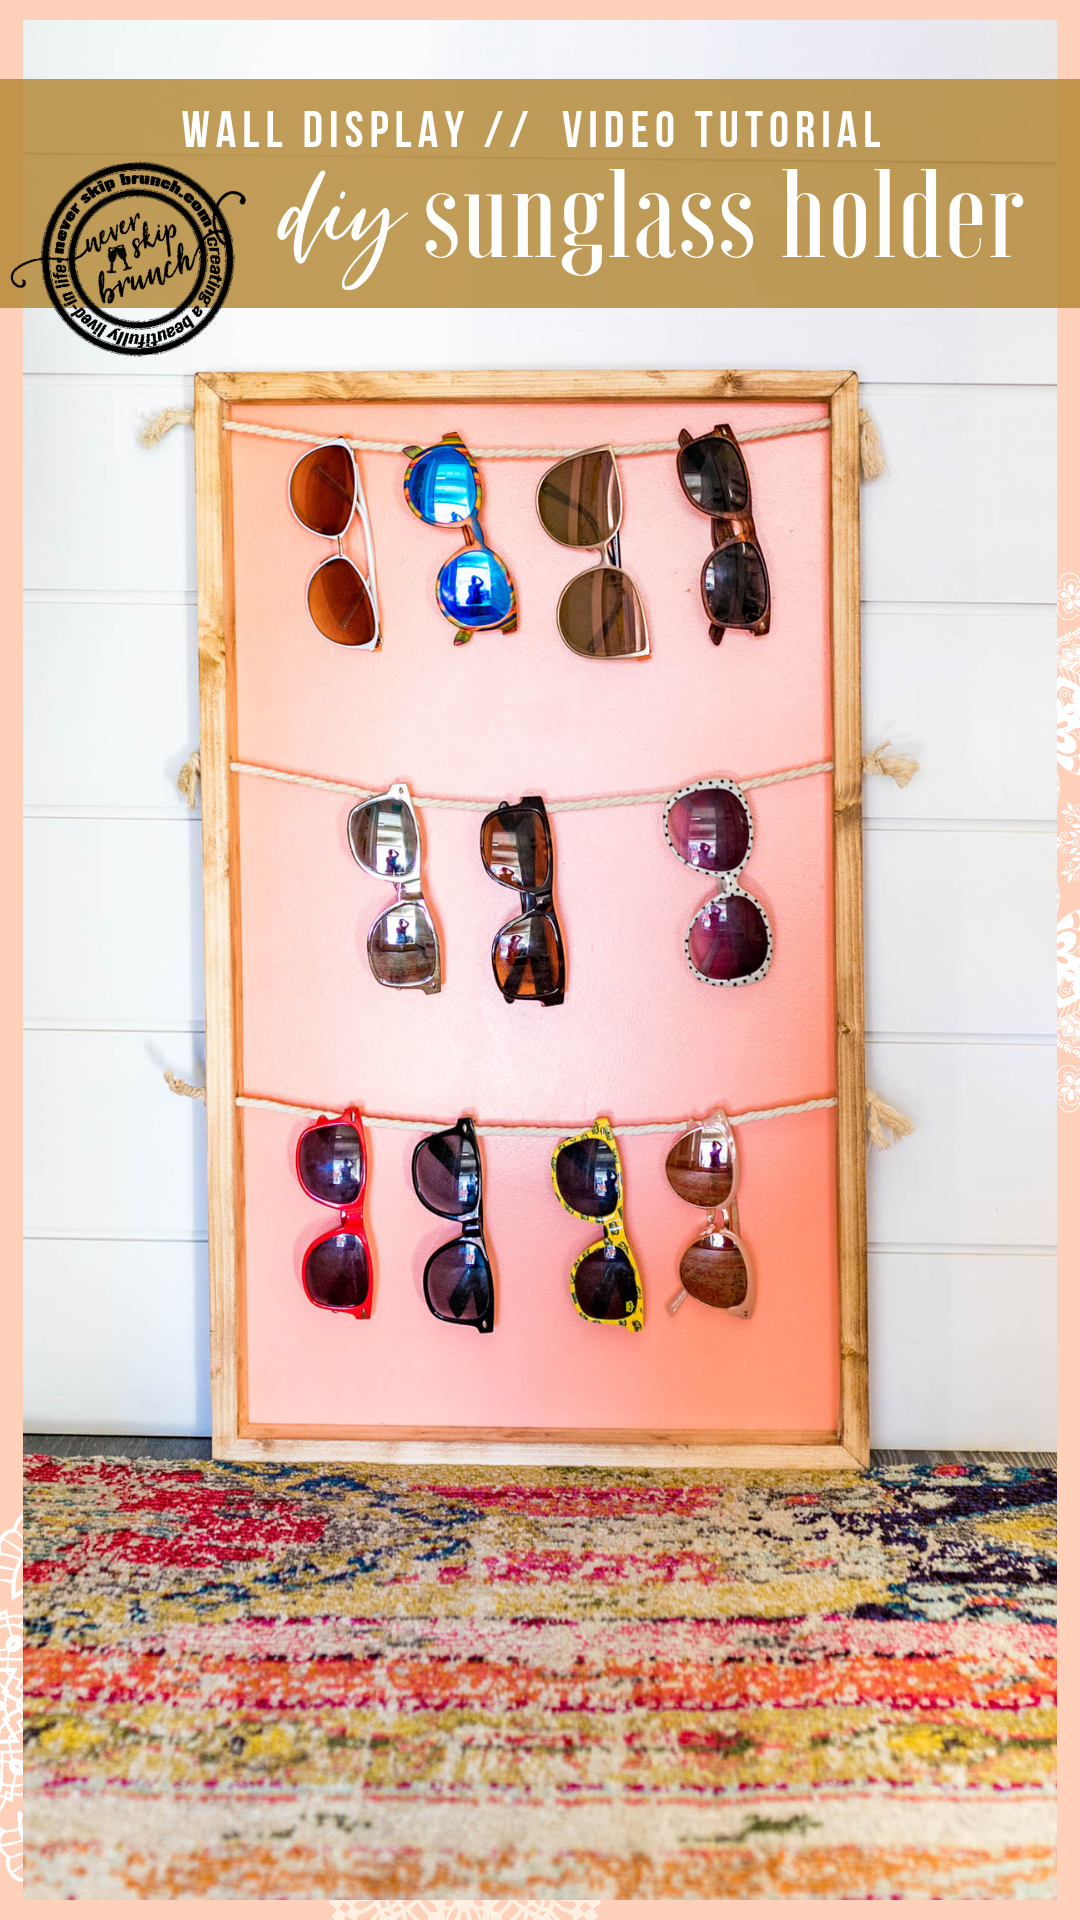 Sunglass Holder Easy Diy Wall Display With Images Sunglasses